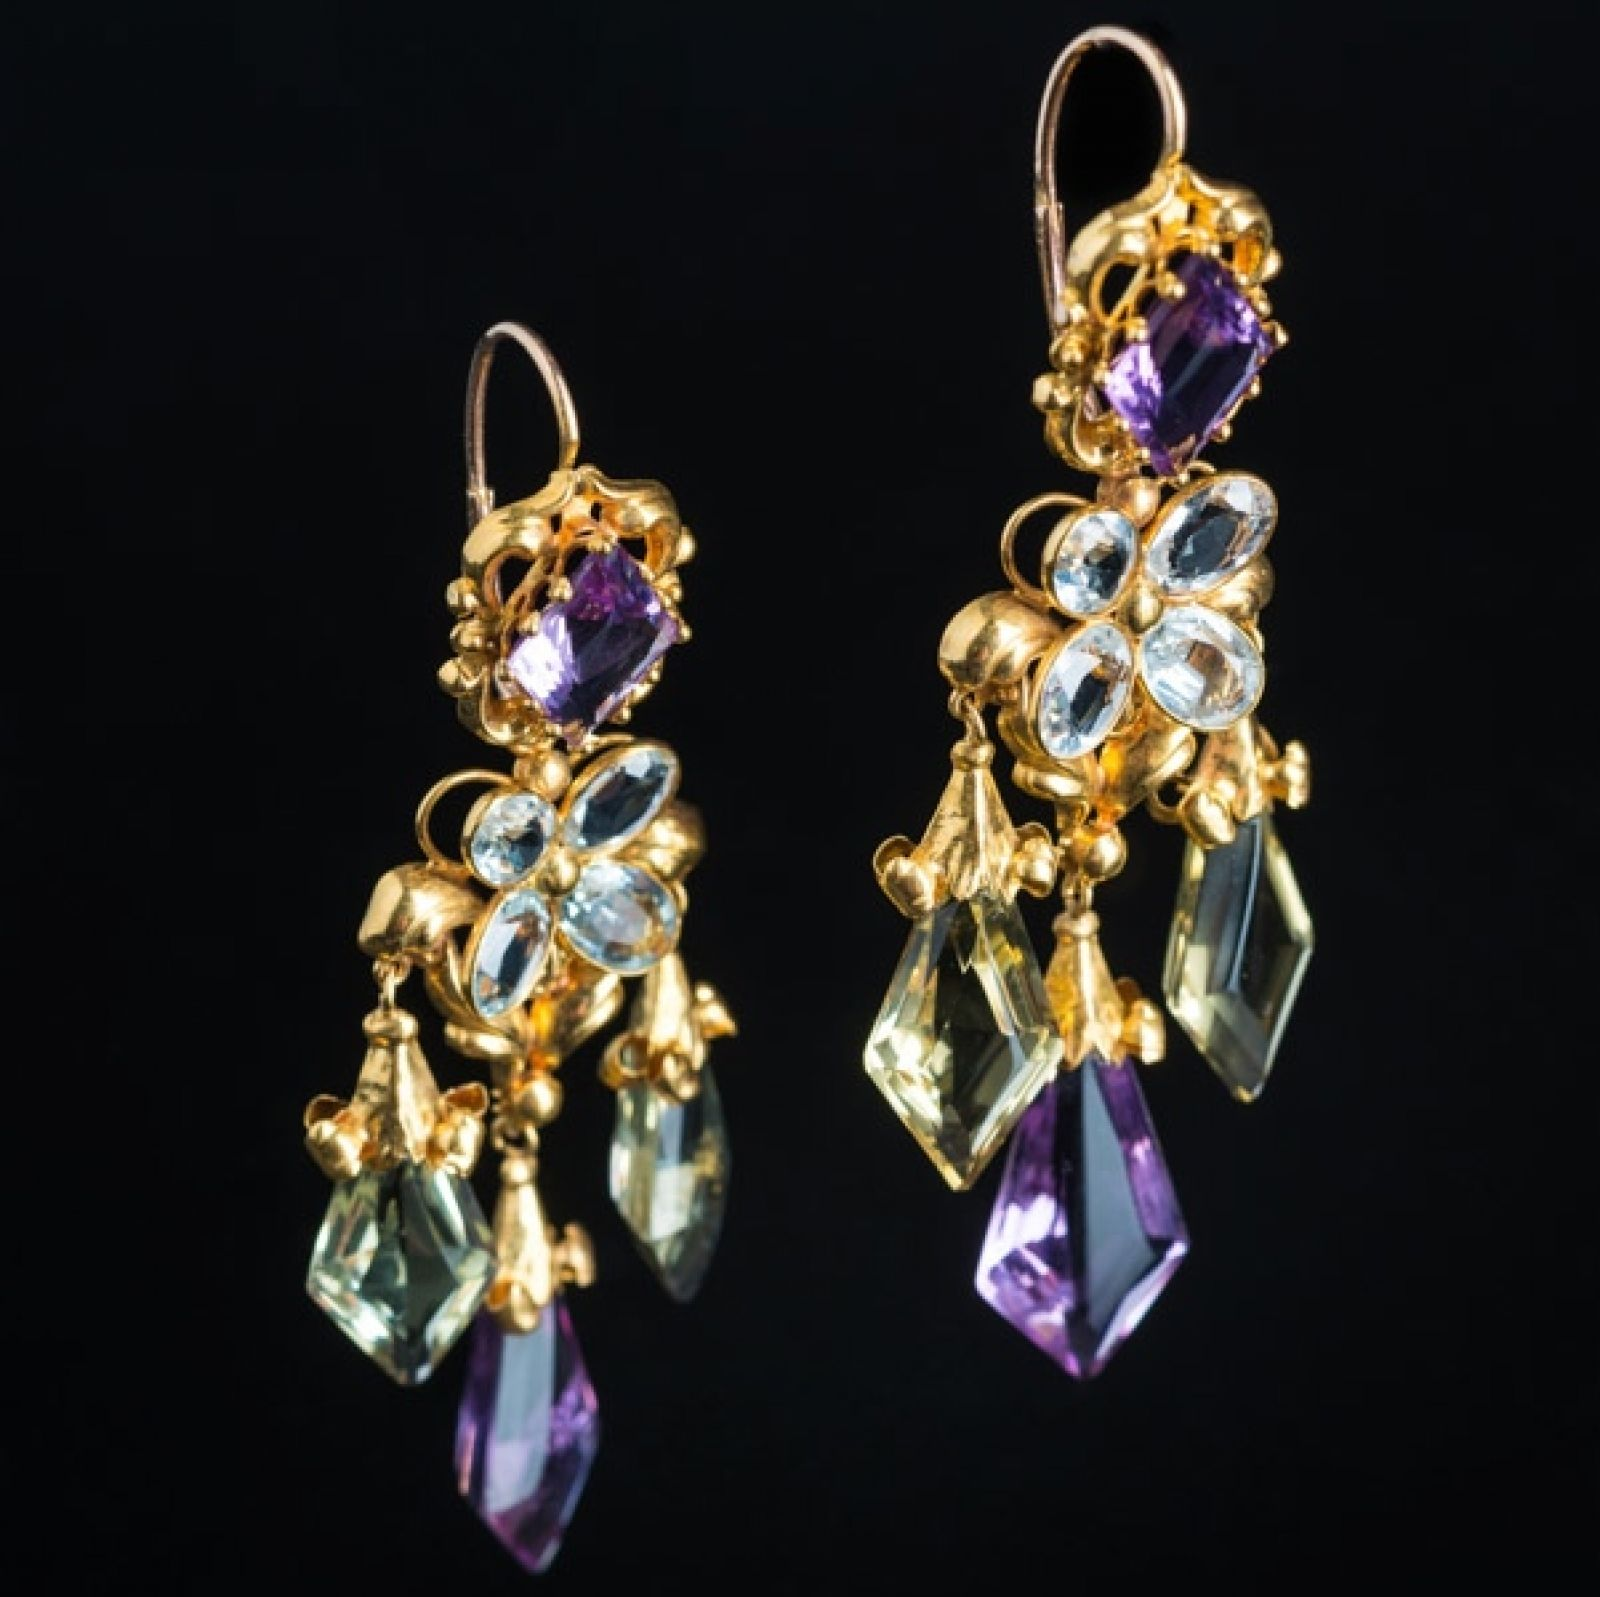 Antique Girandole Earrings